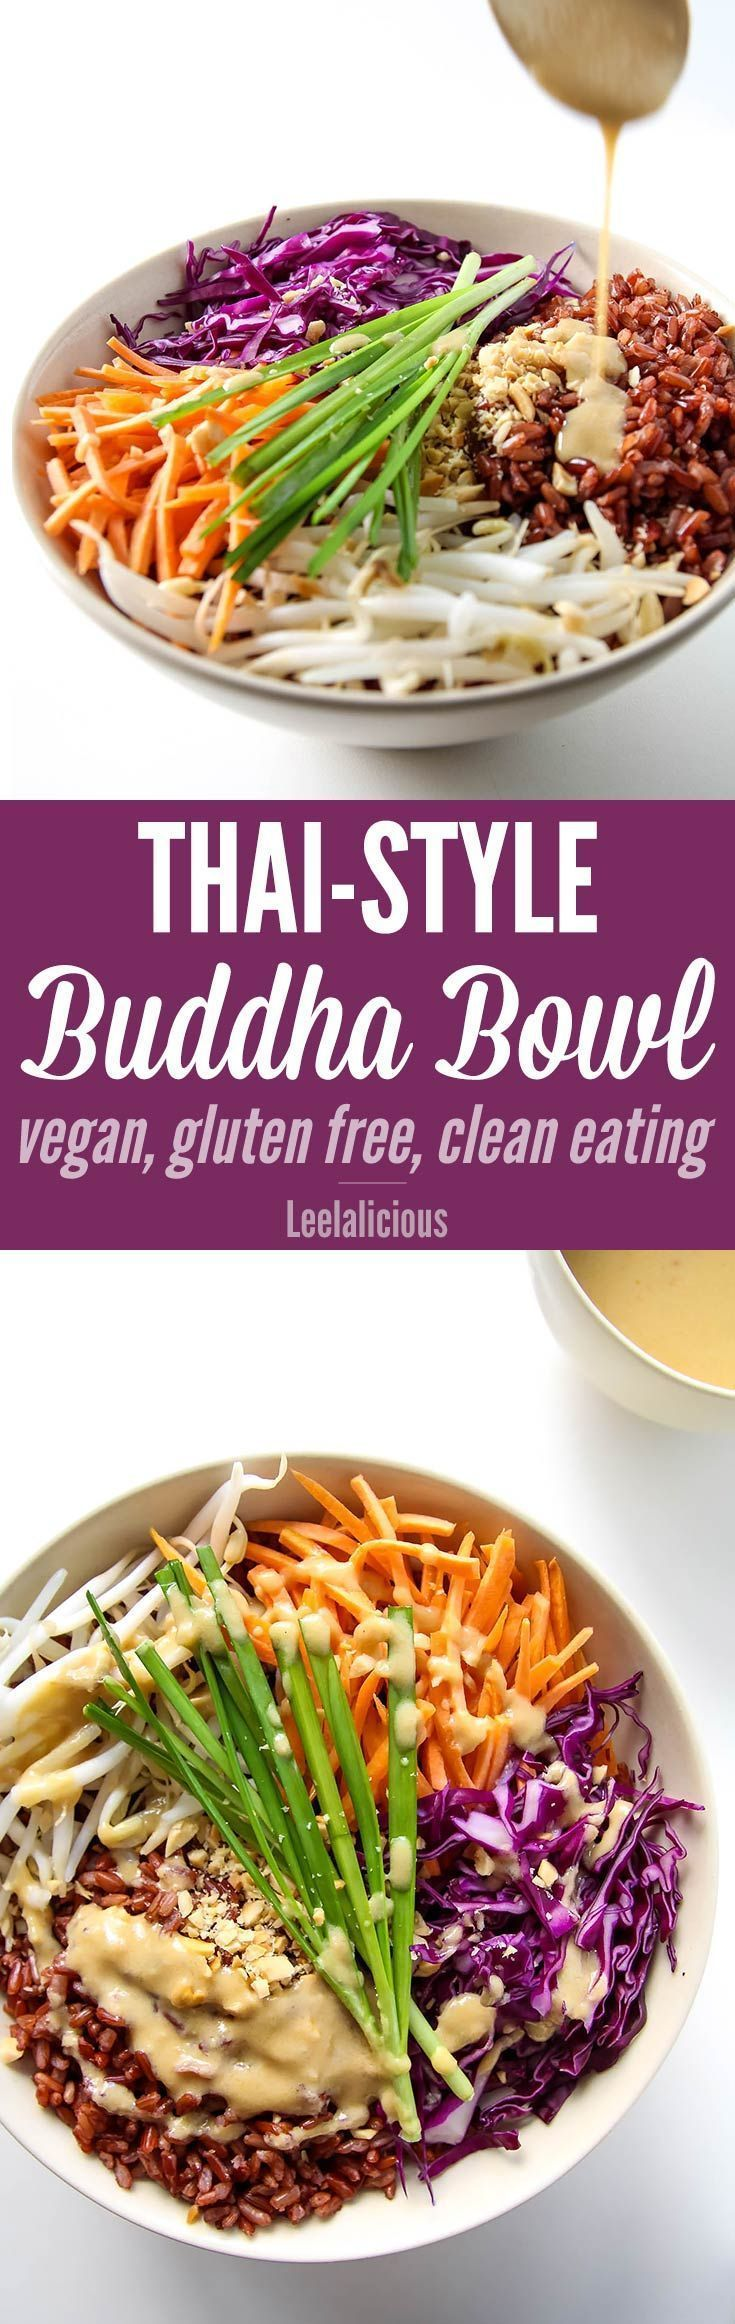 Thai Style Buddha Bowl with Peanut Sauce - this clean eating recipe with red rice and a rainbow of veggies is gluten free and vegan friendly.